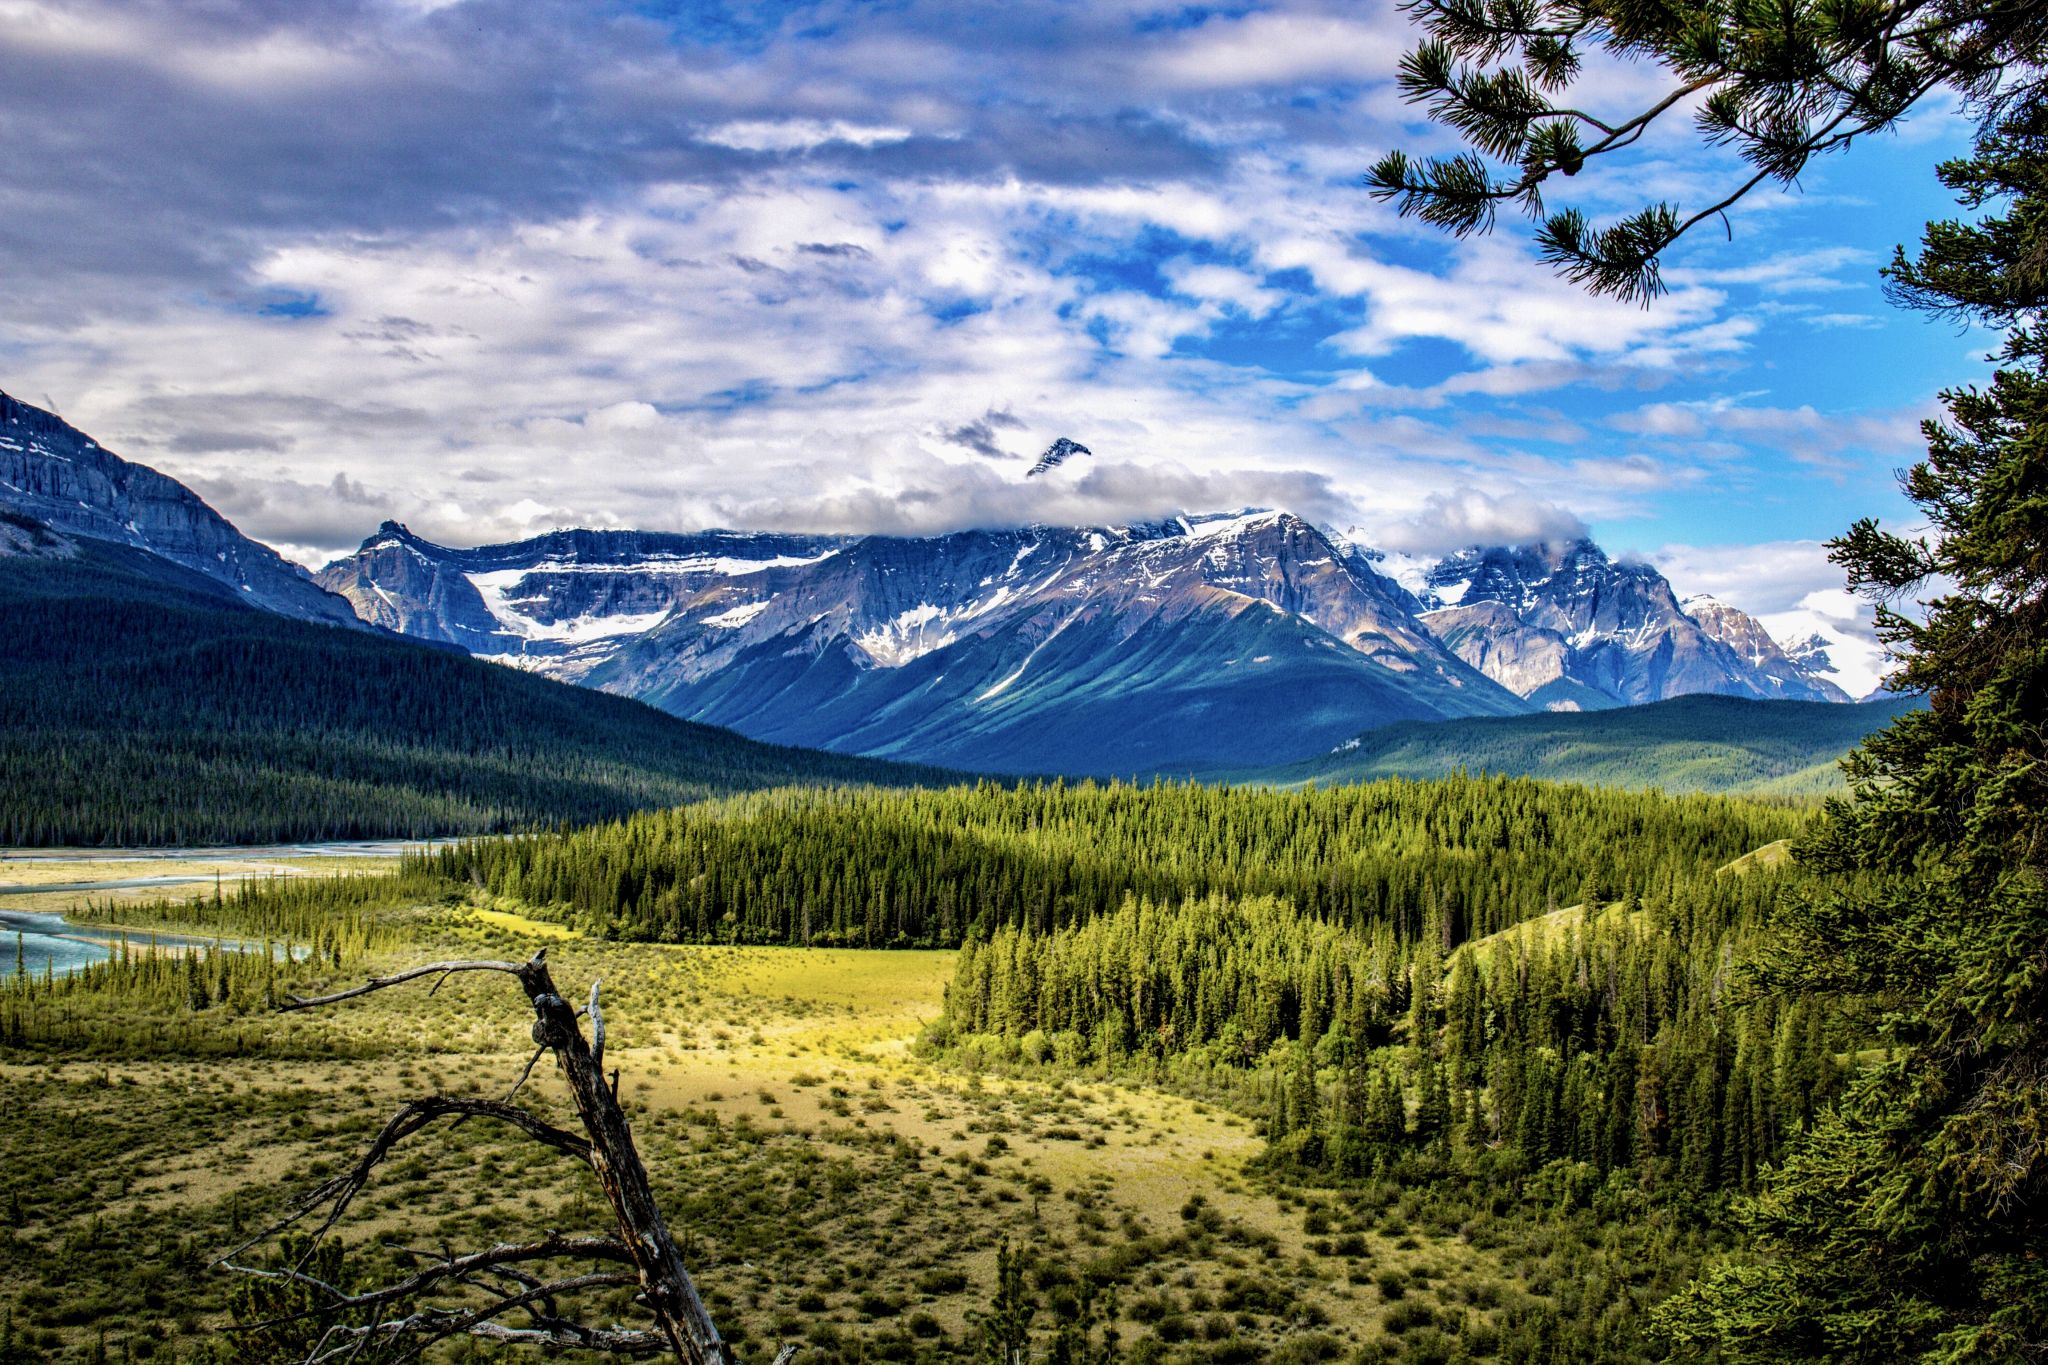 Howe's Pass Viewpoint, Canada